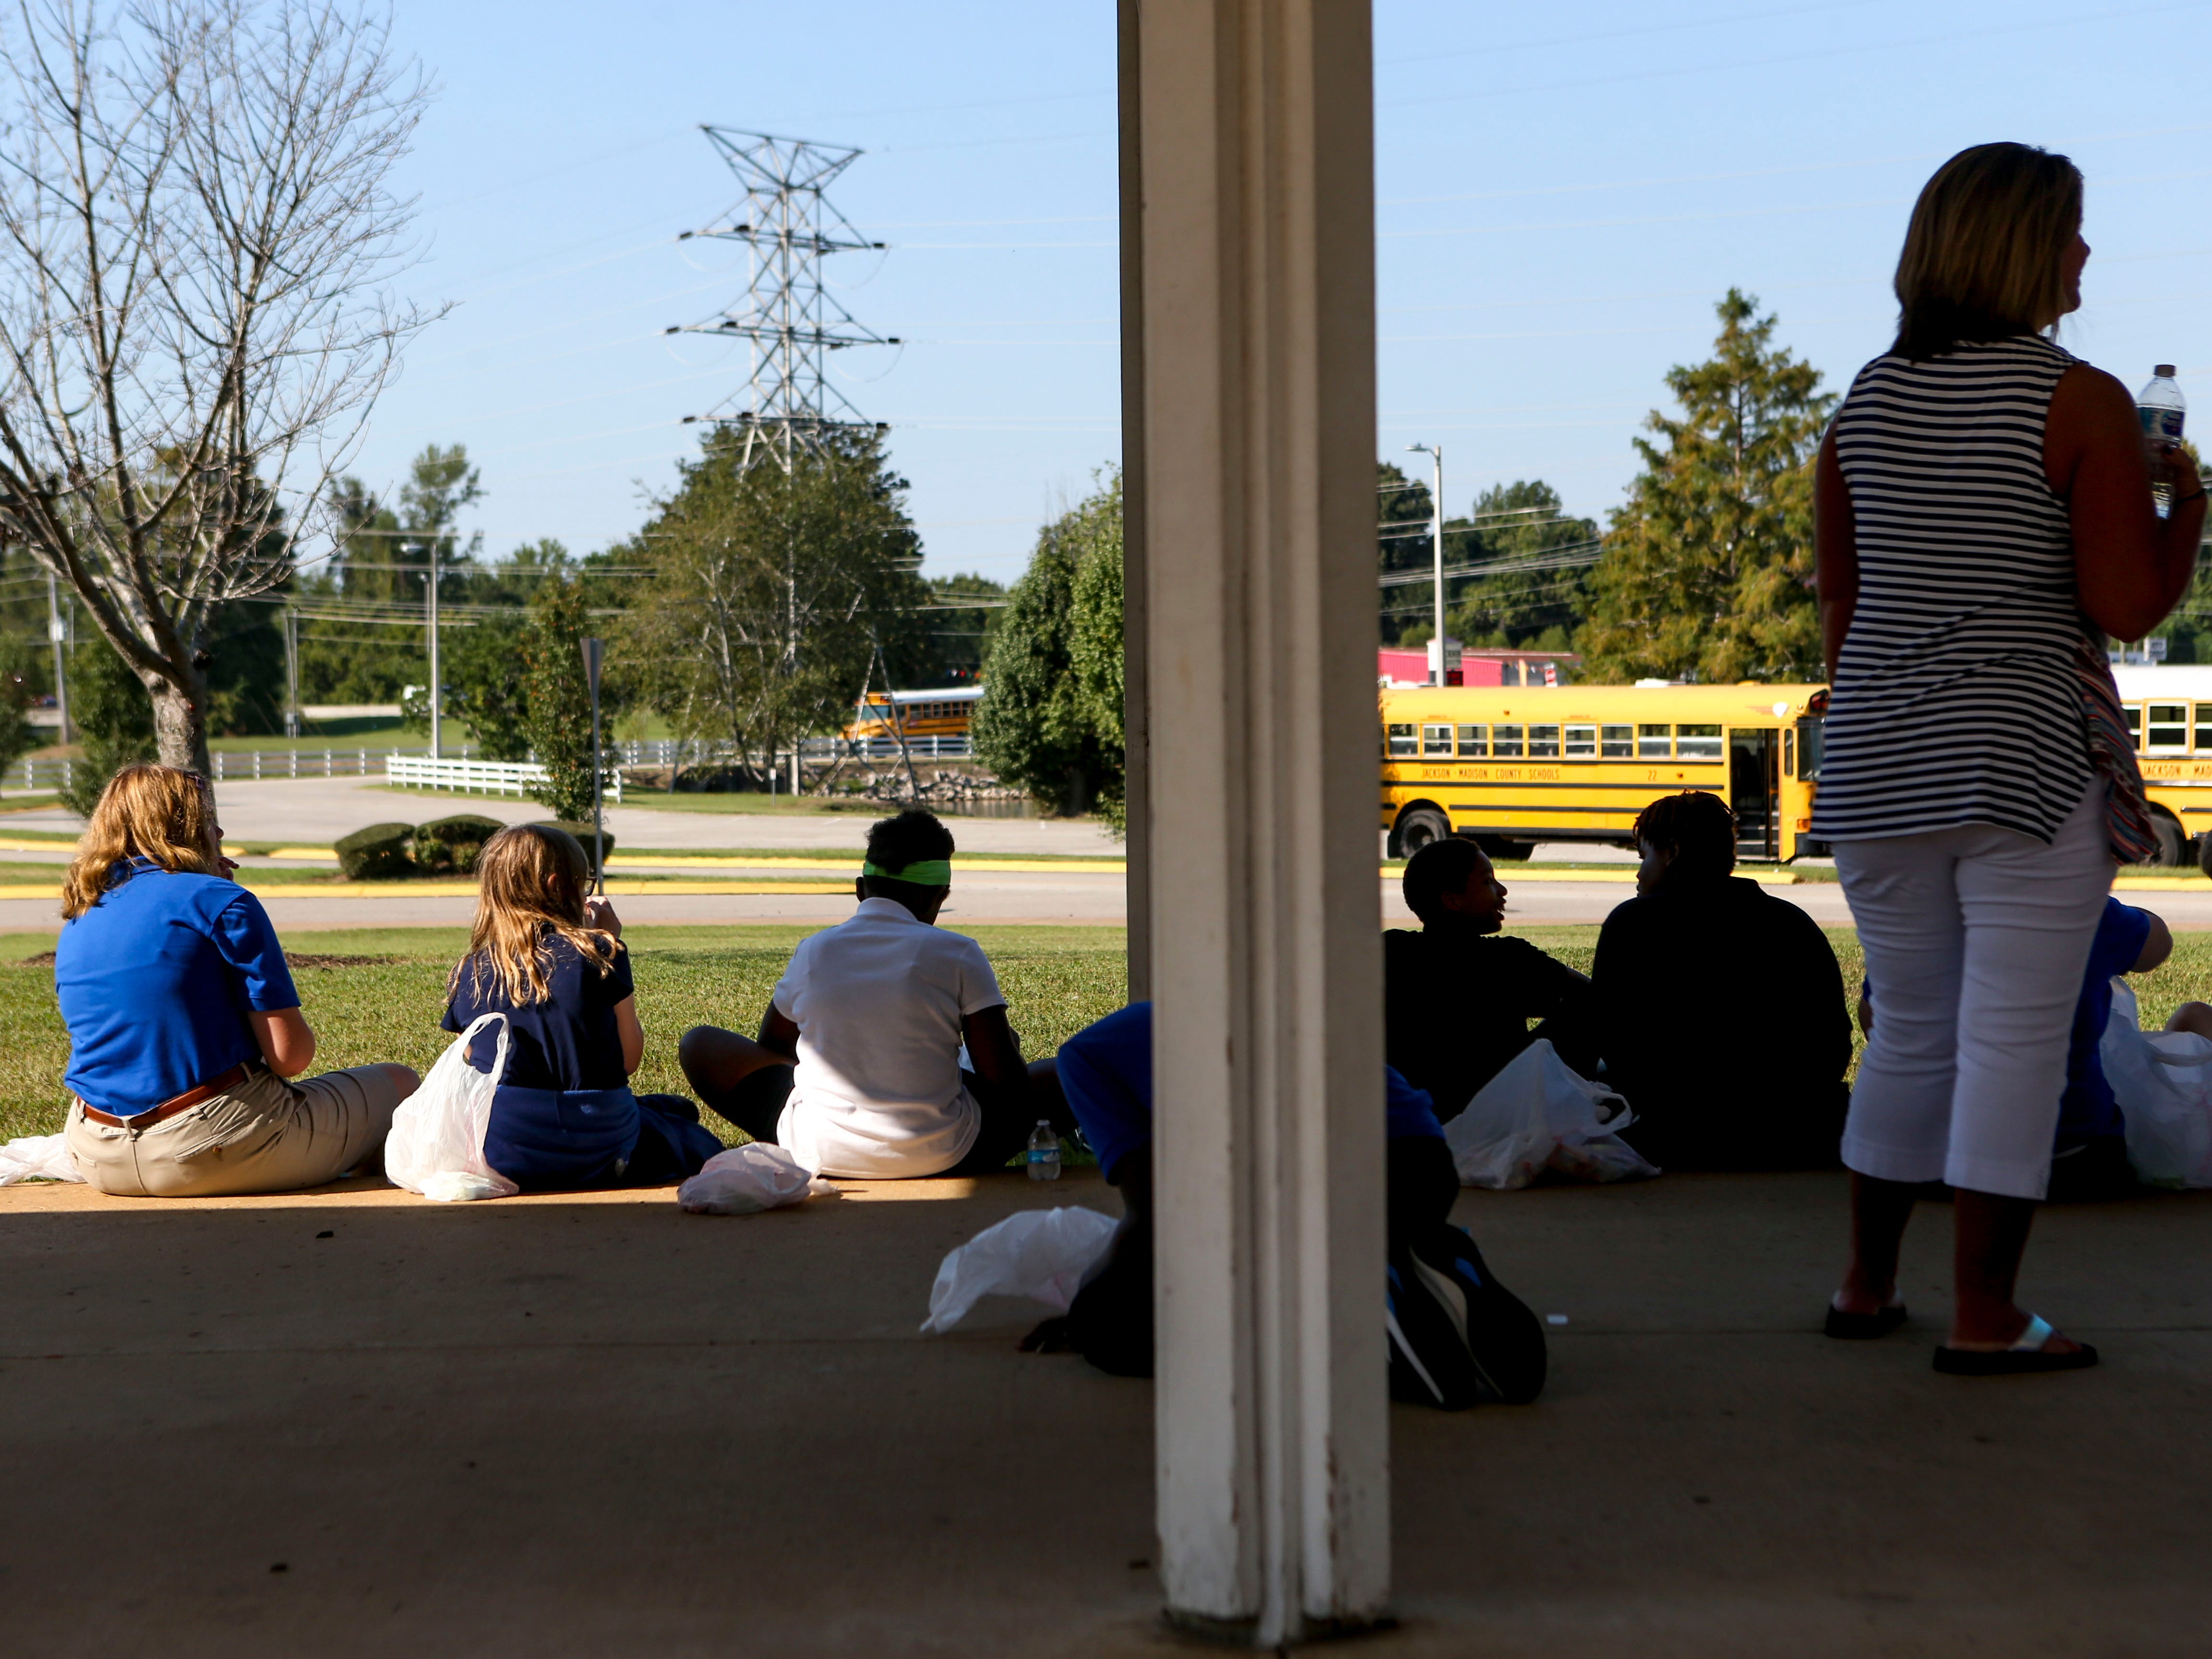 A group of attendees sits on a curb waiting for their bus to pick them up at the Day of Champions celebration held at Jackson Fairgrounds Park in Jackson, Tenn., on Wednesday, Sept. 19, 2018.